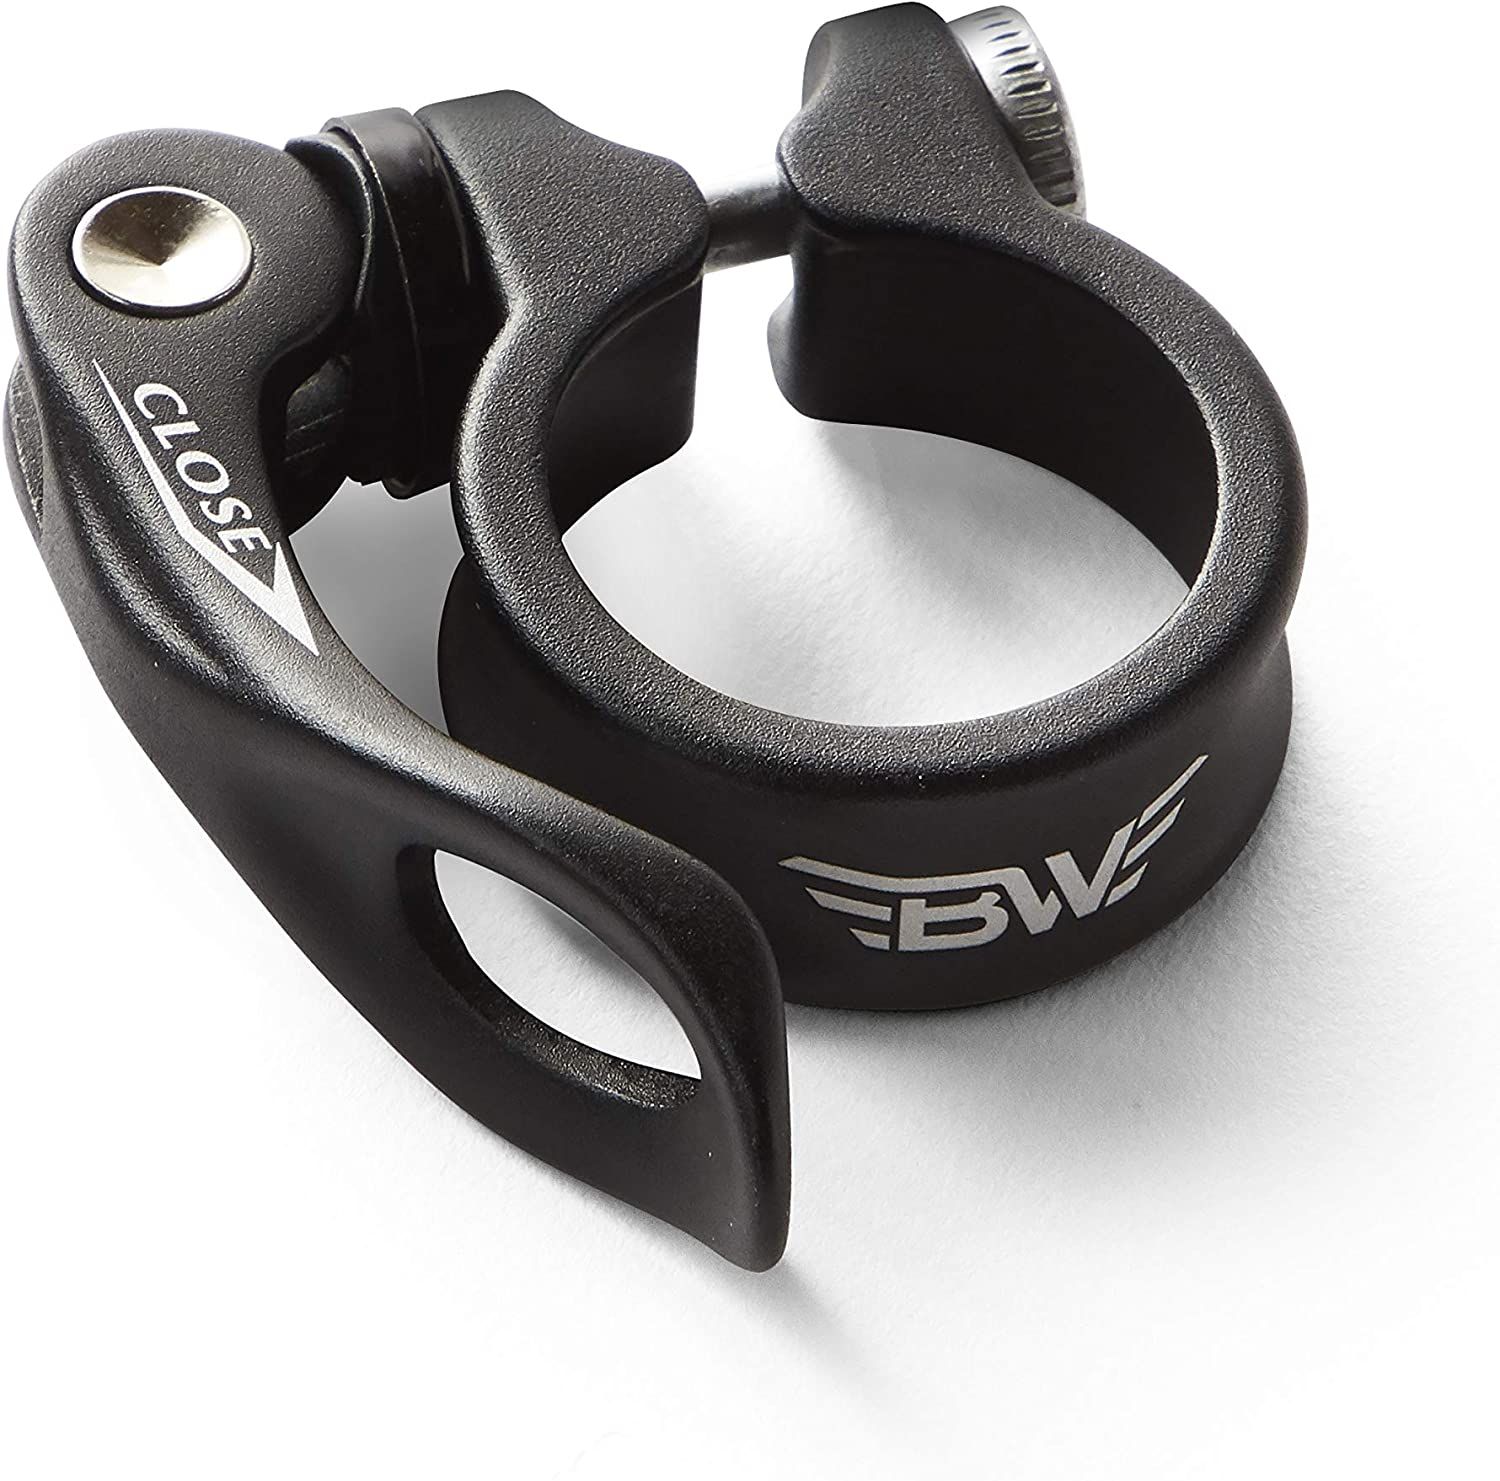 31.6 and 34.9 Options BW USA QR Seatpost Clamp 28.6